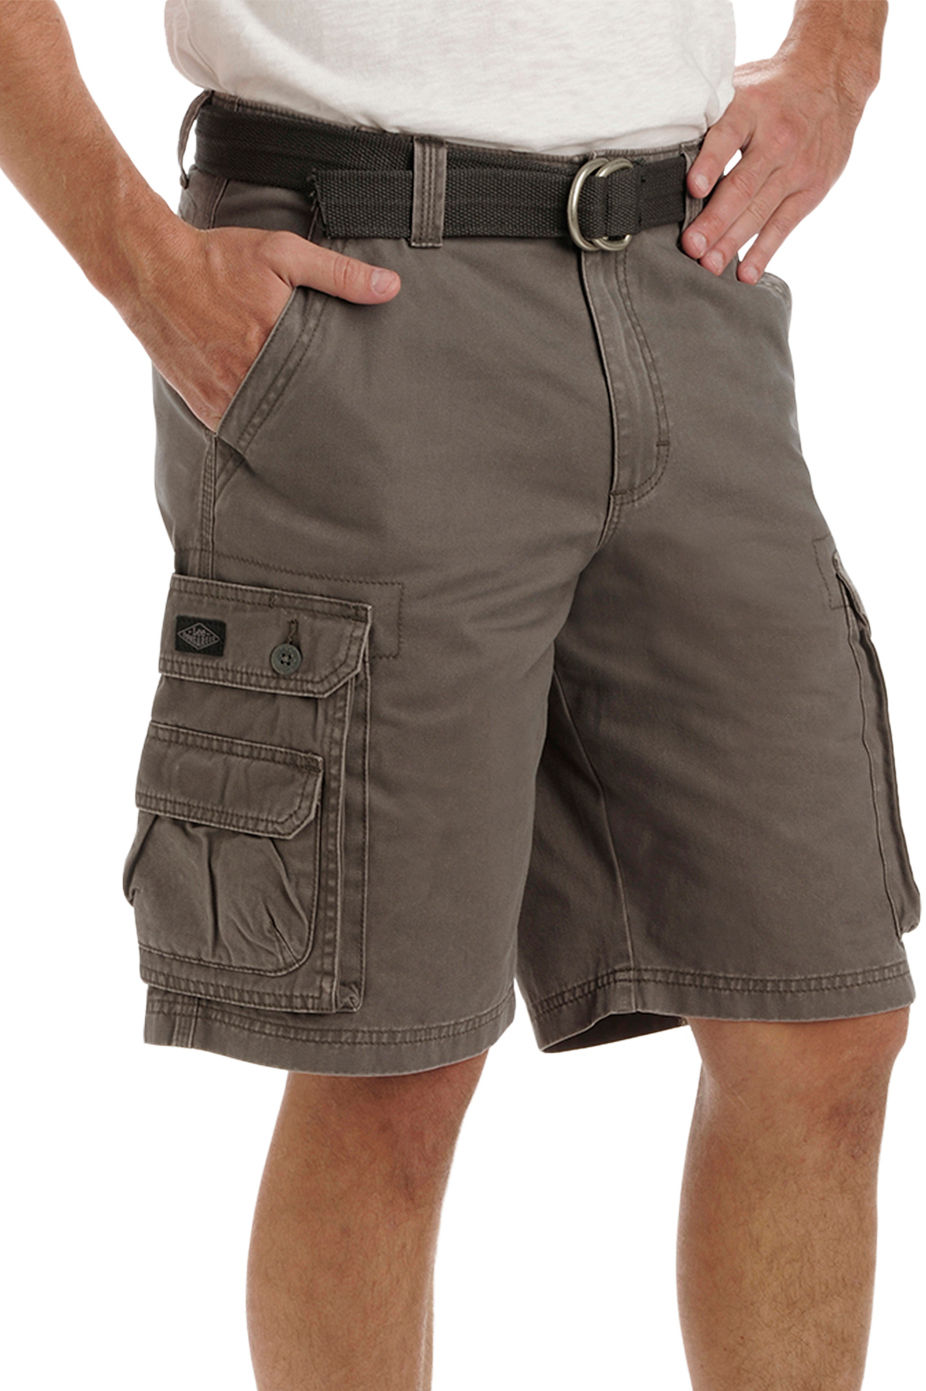 Find great deals on eBay for big cargo shorts. Shop with confidence.